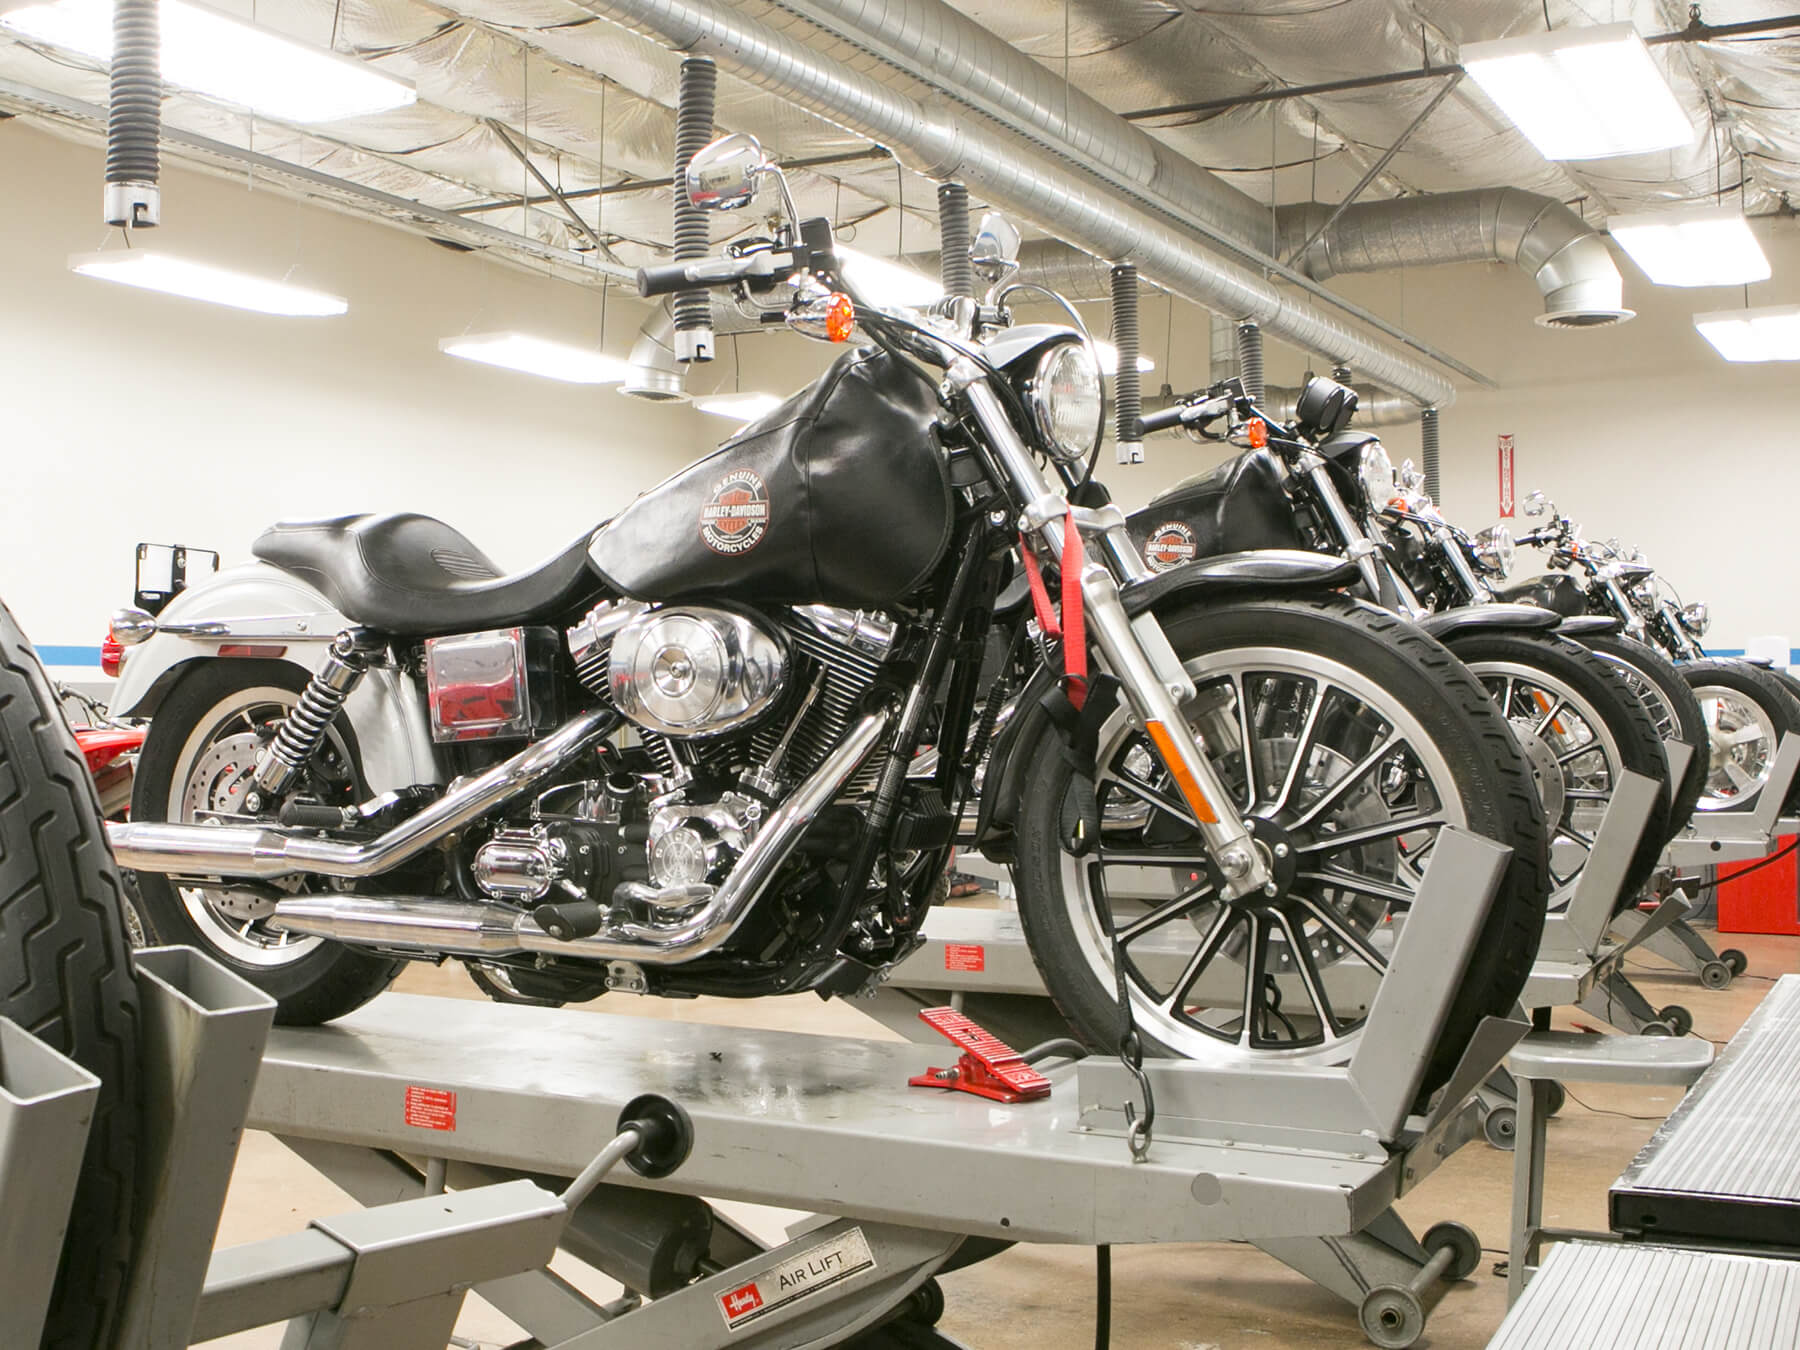 Wide angle photo of the Harley Davidson lab and its bikes